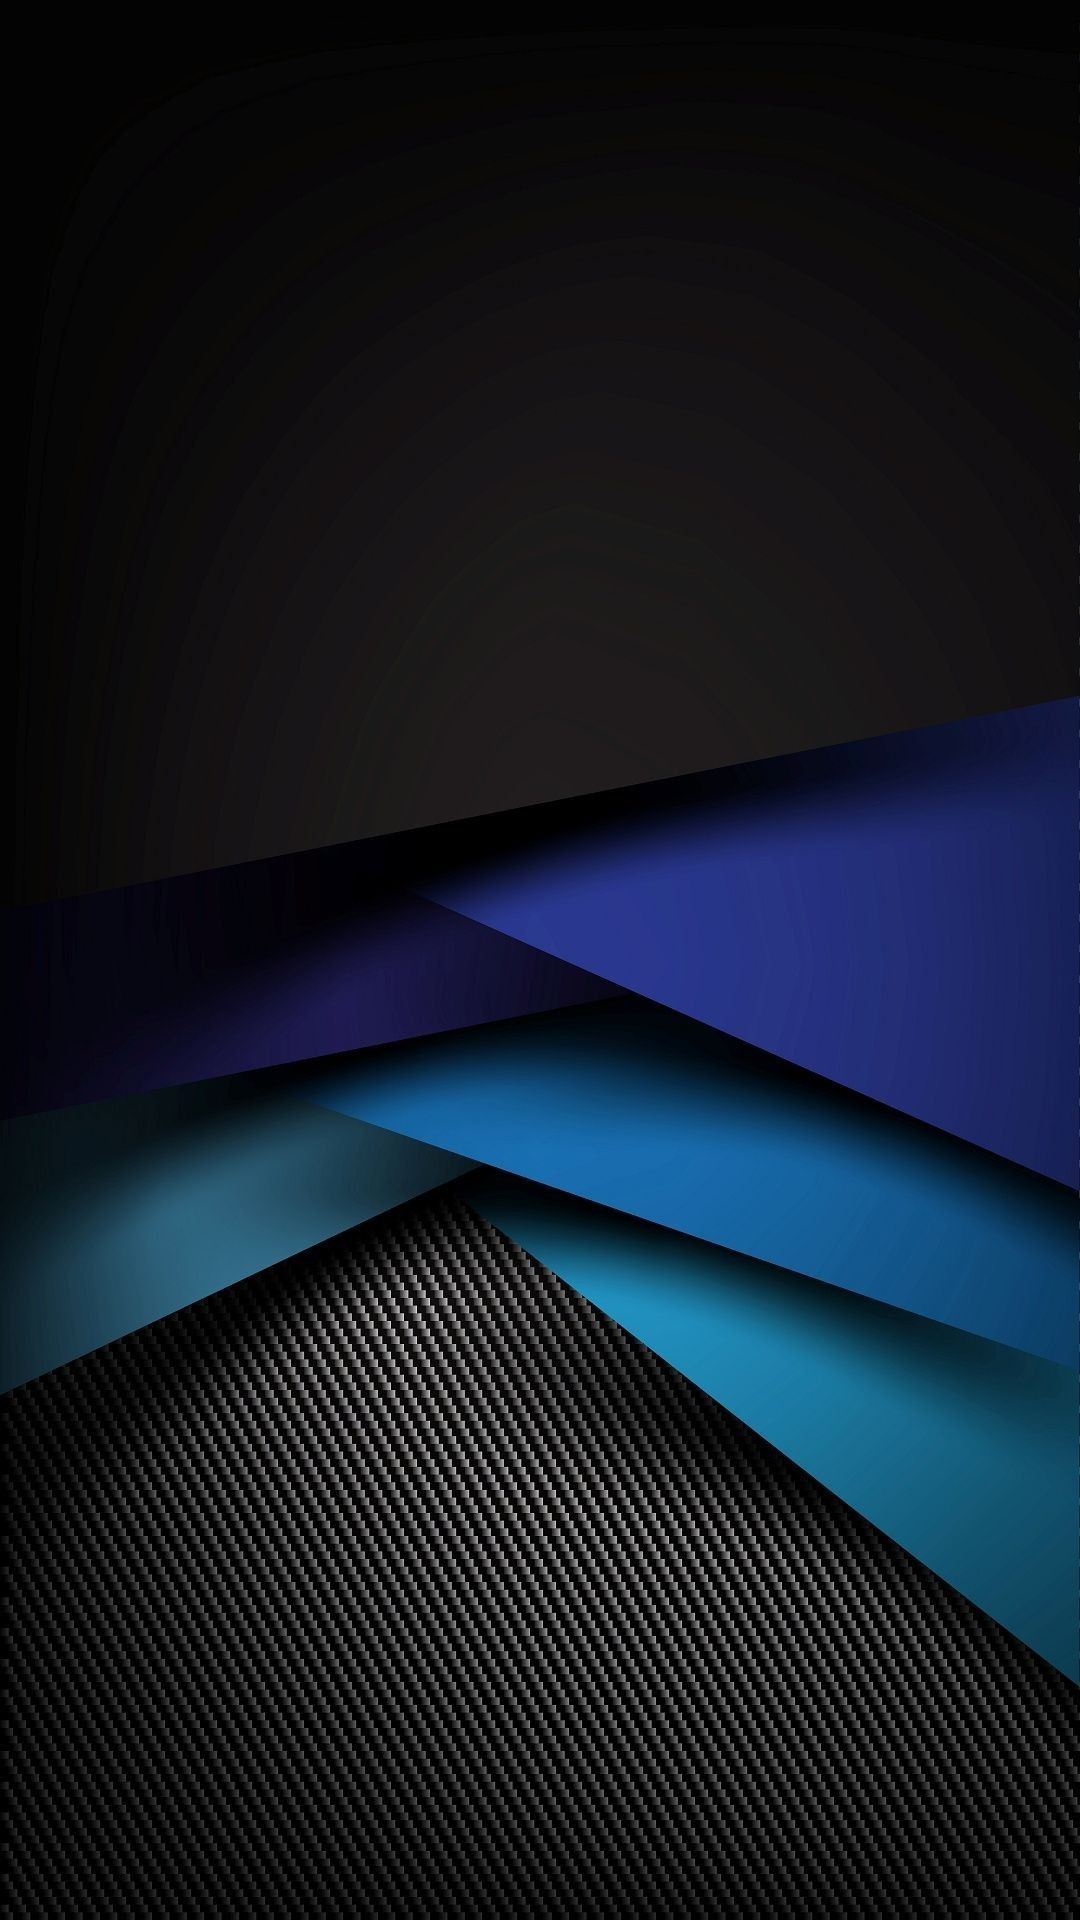 Abstract Wallpapers For Phones Posted By Samantha Simpson